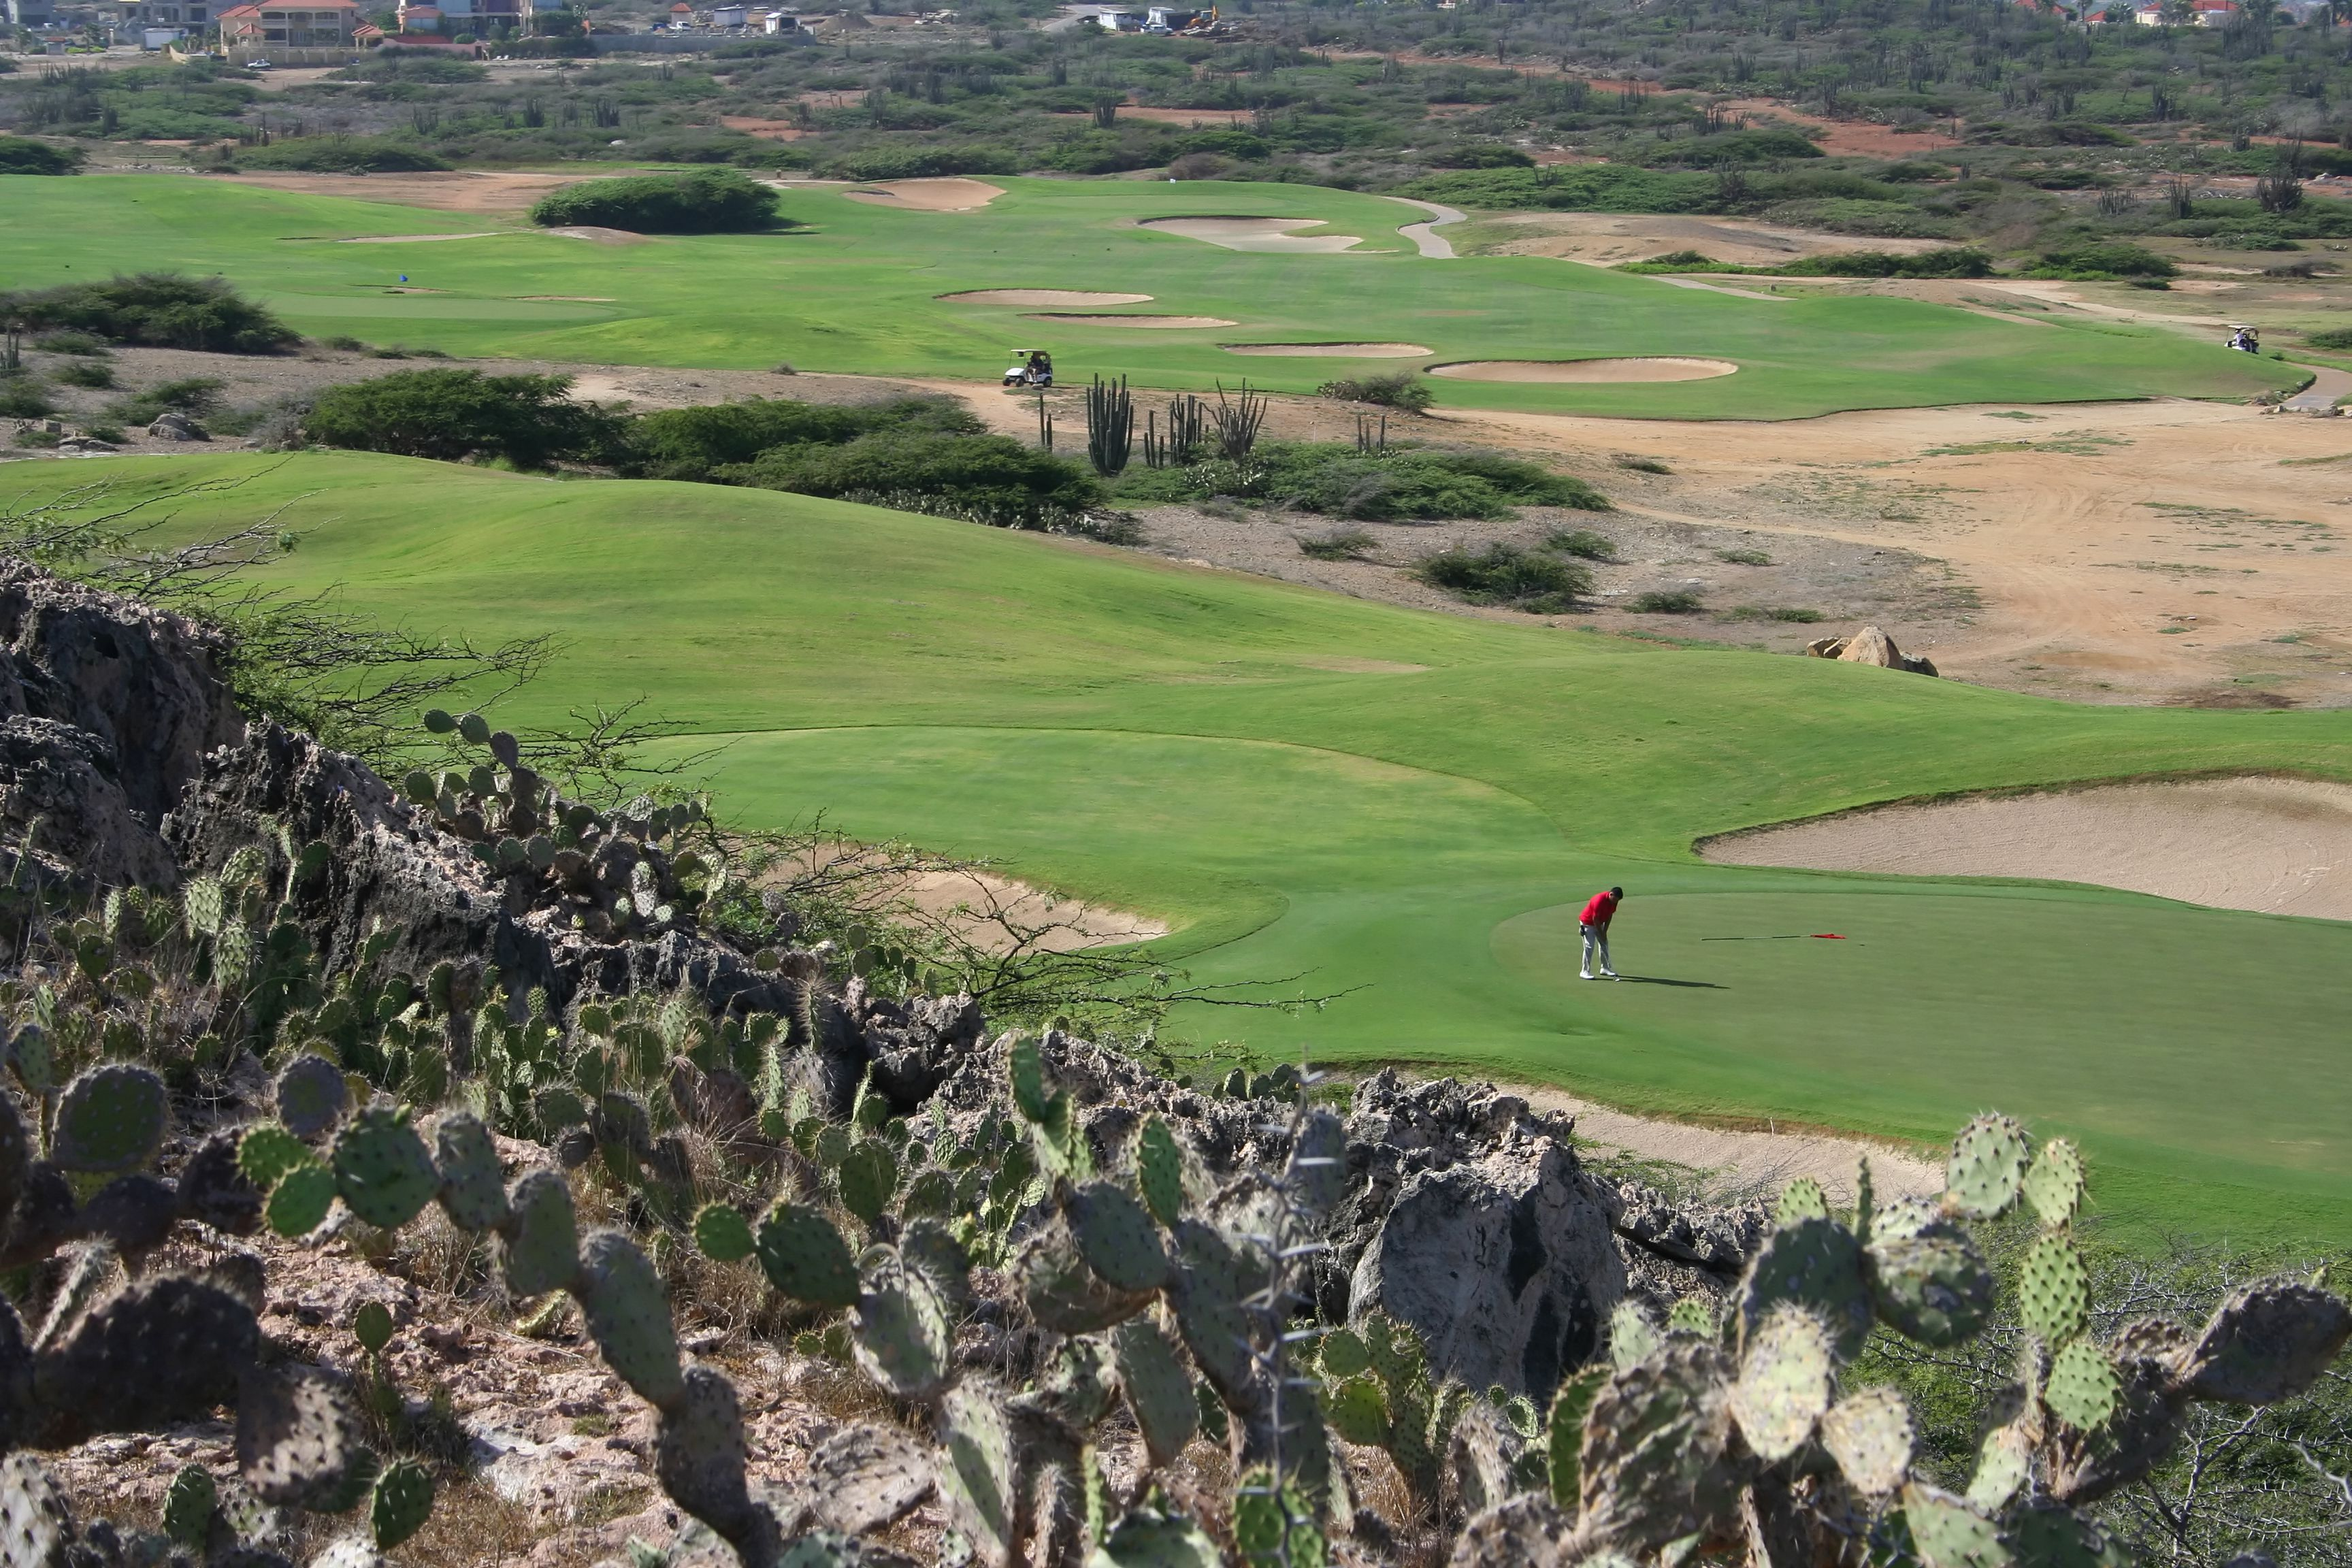 Golfer putting at the Golf Course at Tierra del Sol in Aruba